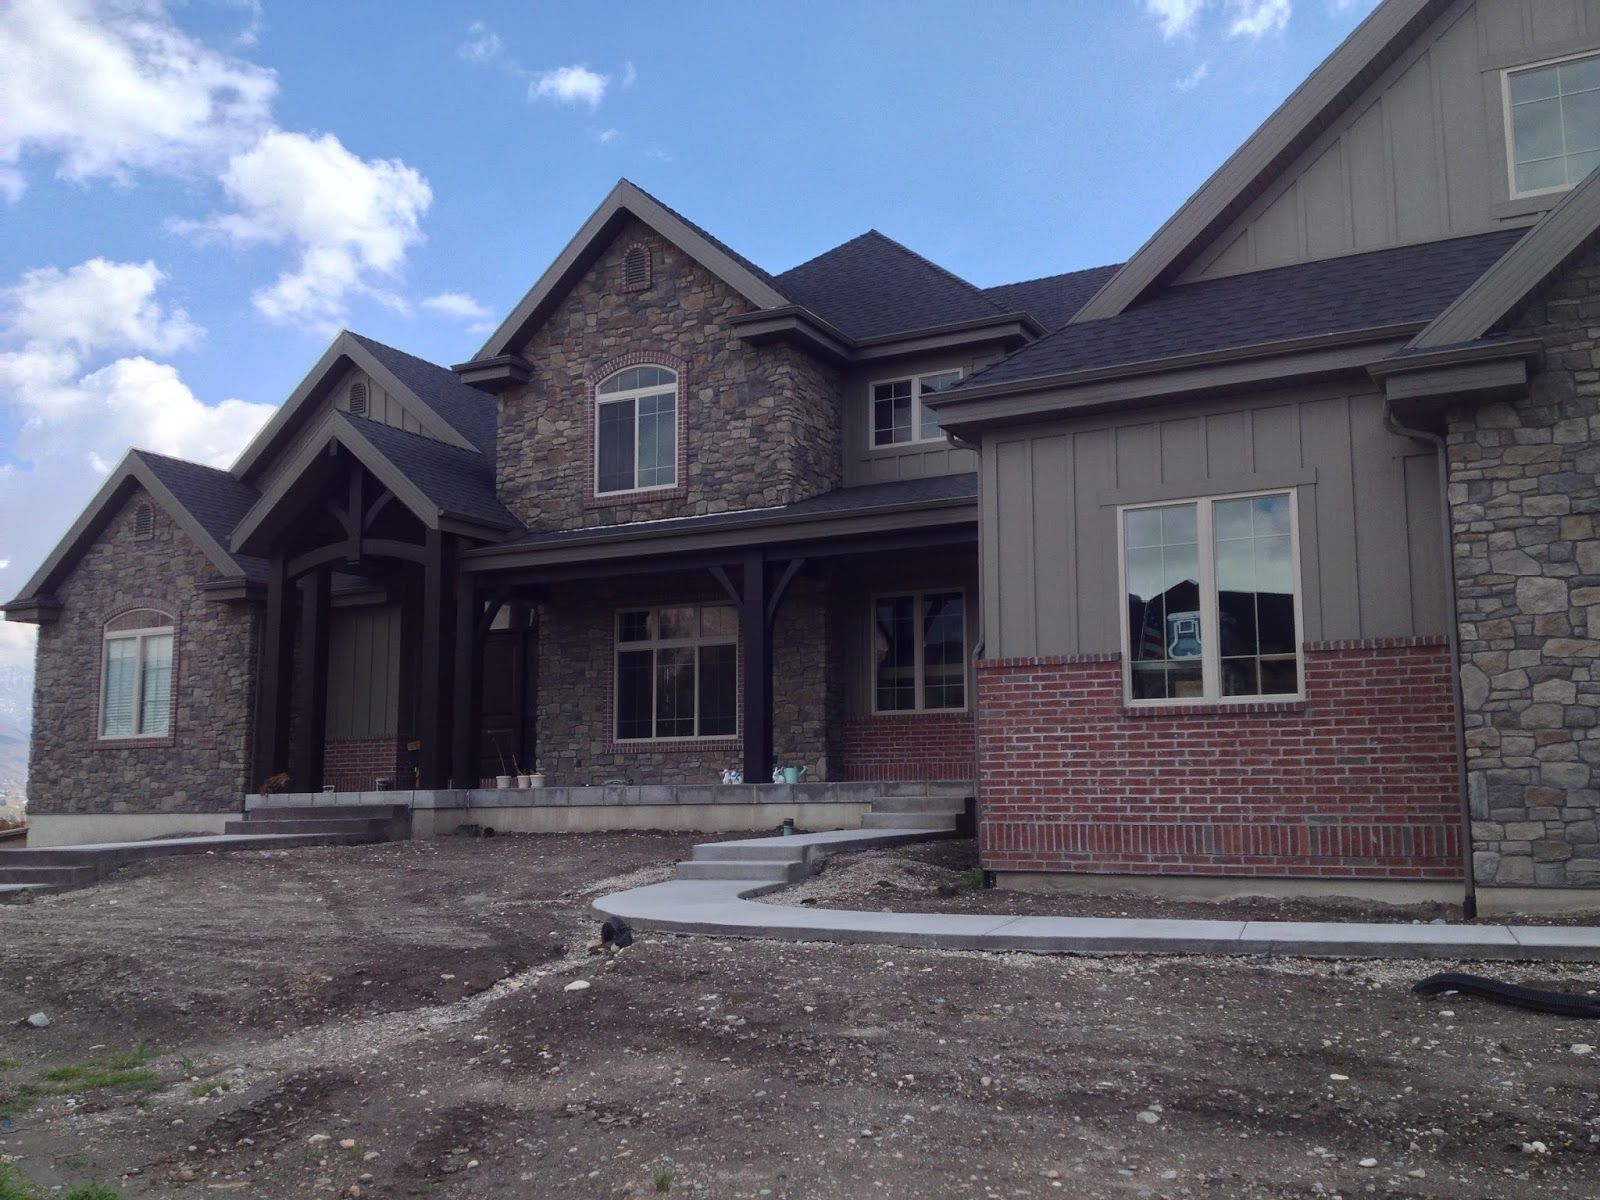 Brick Homes With Stone Accents Using Brick Stone On Your Home Exterior Red Brick Home